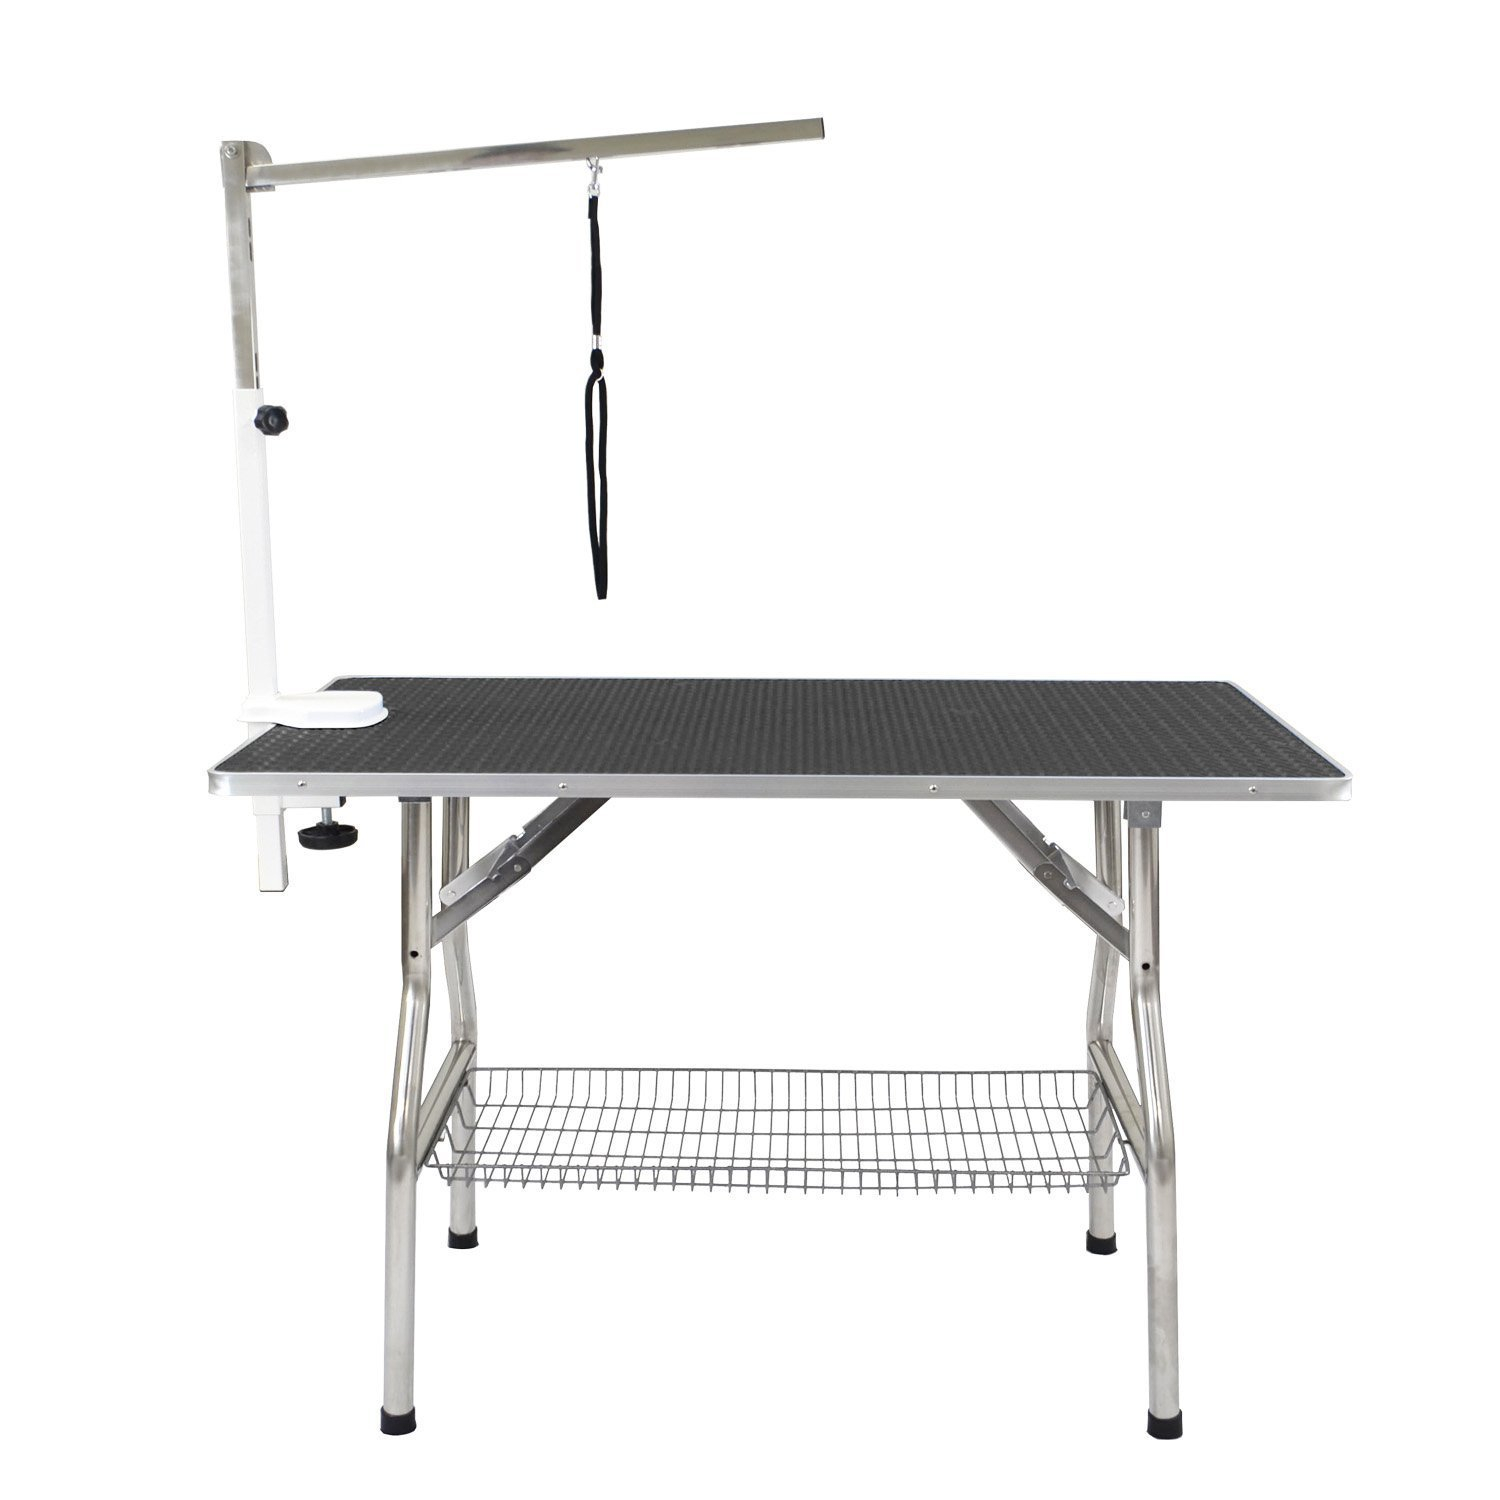 Flying Pig Grooming Medium Stainless Steel Frame Foldable Dog Pet Table, 38'' by 22'', Black by Flying Pig Grooming (Image #2)